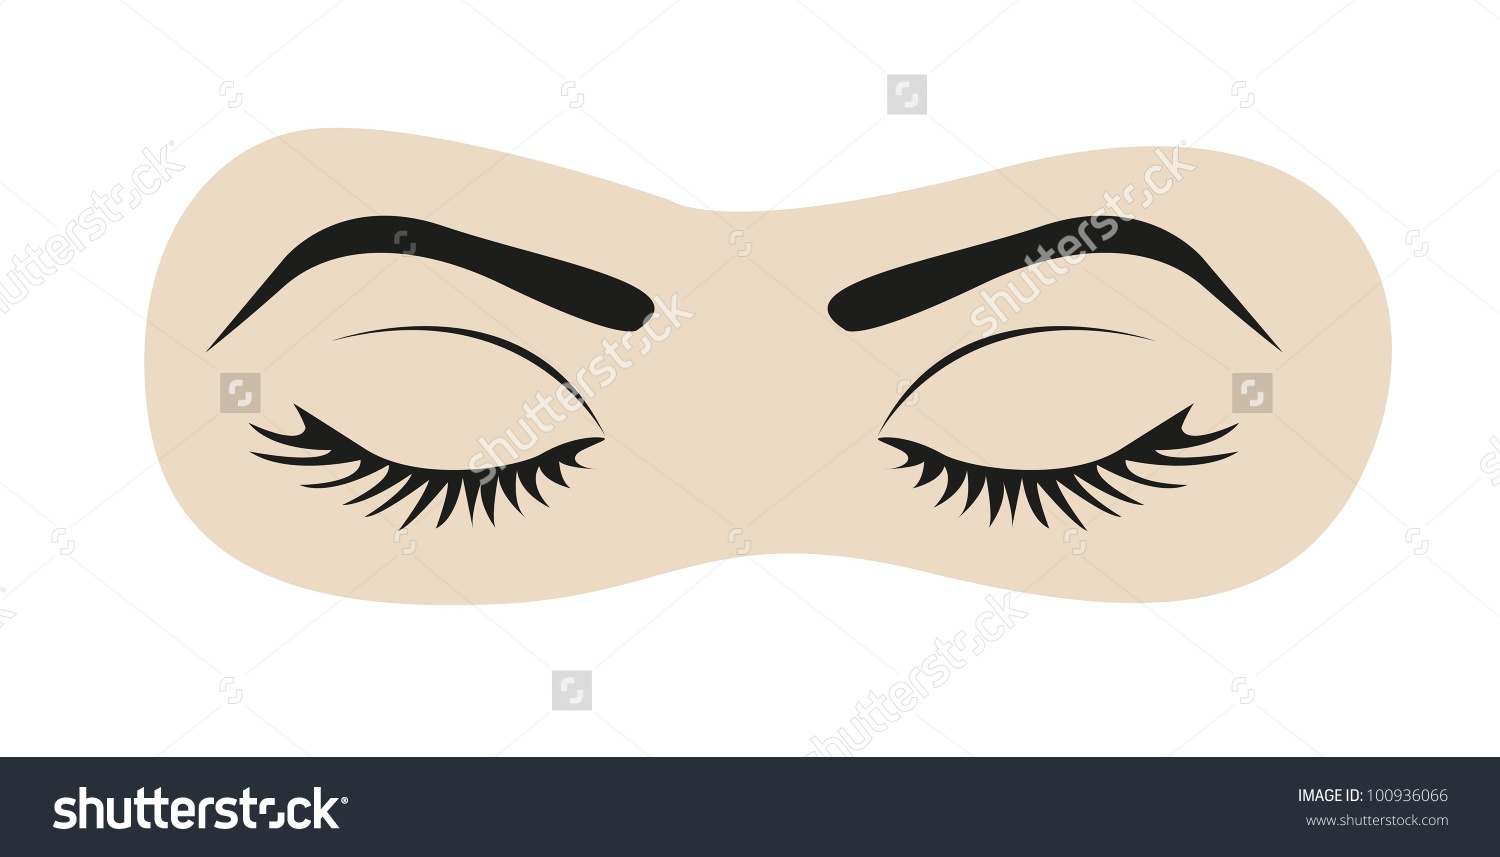 Eyes Shut Clipart.